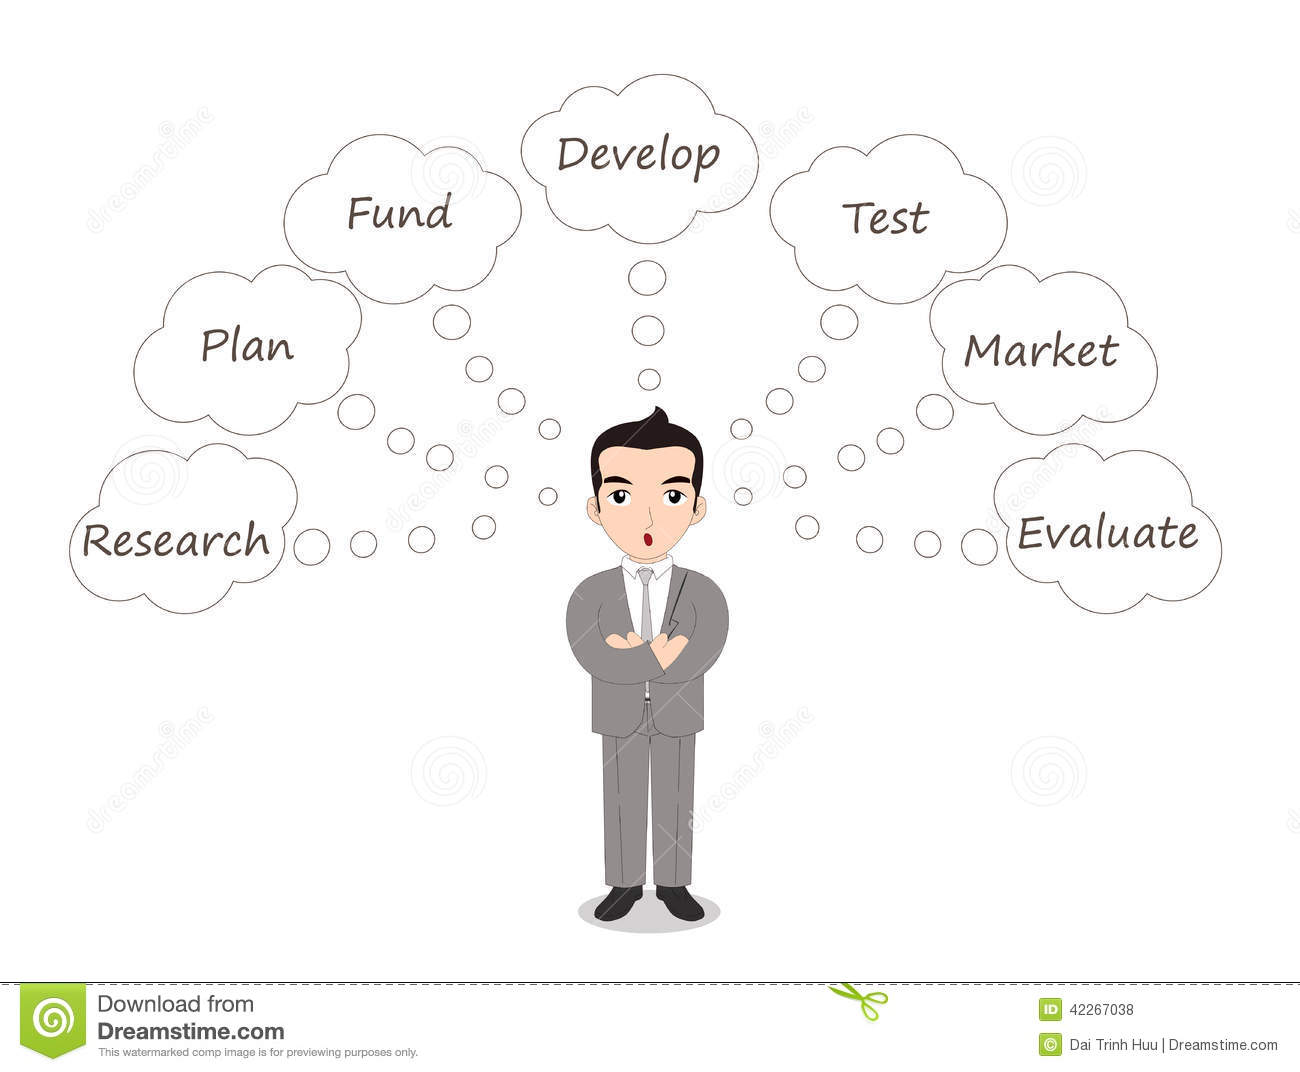 How to evaluate a business